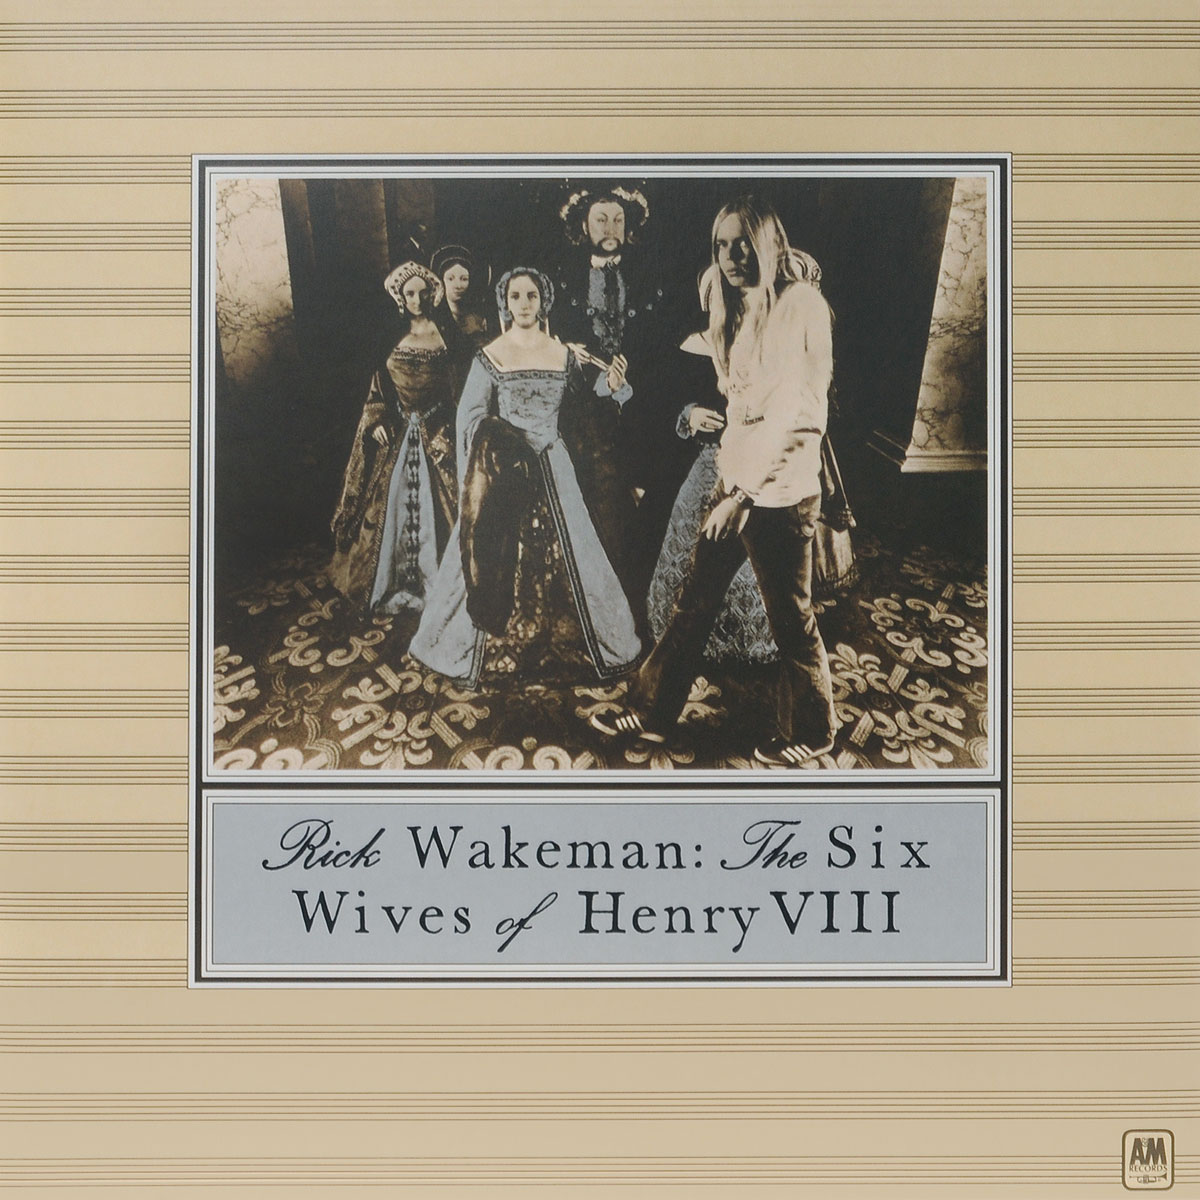 Рик Уэйкман Rick Wakeman. The Six Wives Of Henry VIII (LP) рик уэйкман rick wakeman journey to the centre of the eart deluxe edition cd dvd